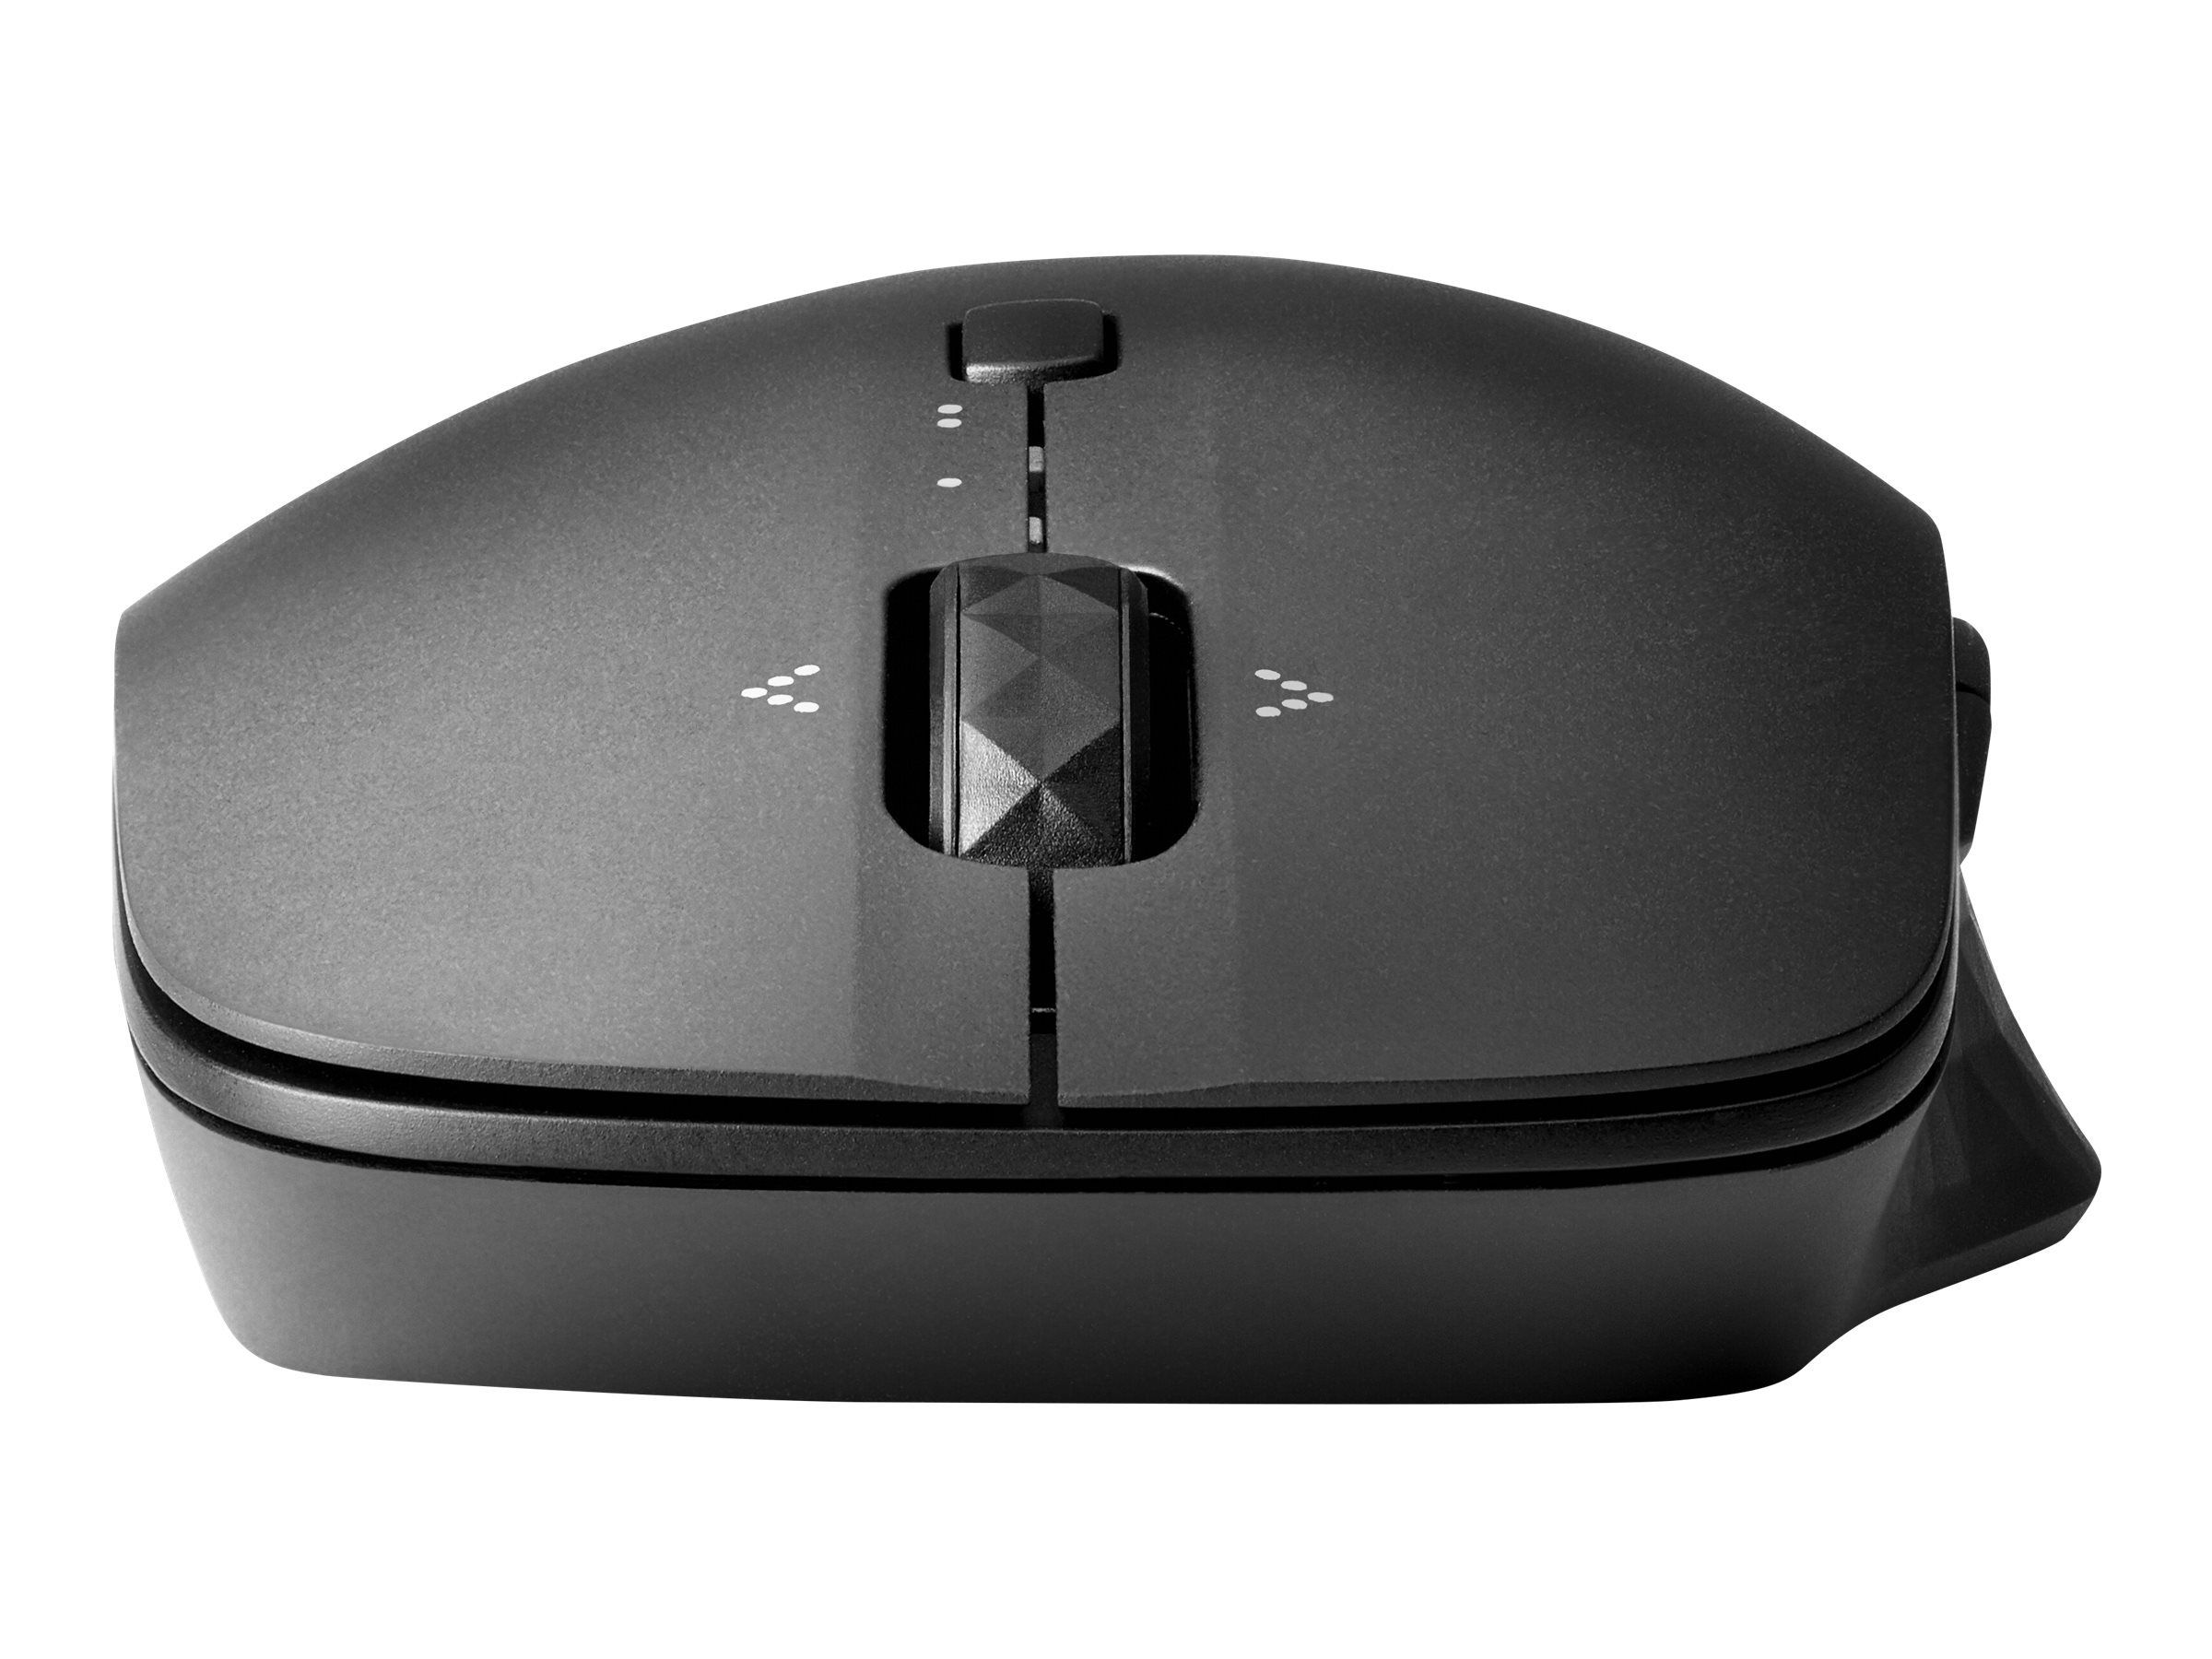 HP Travel - mouse - Bluetooth 4.0